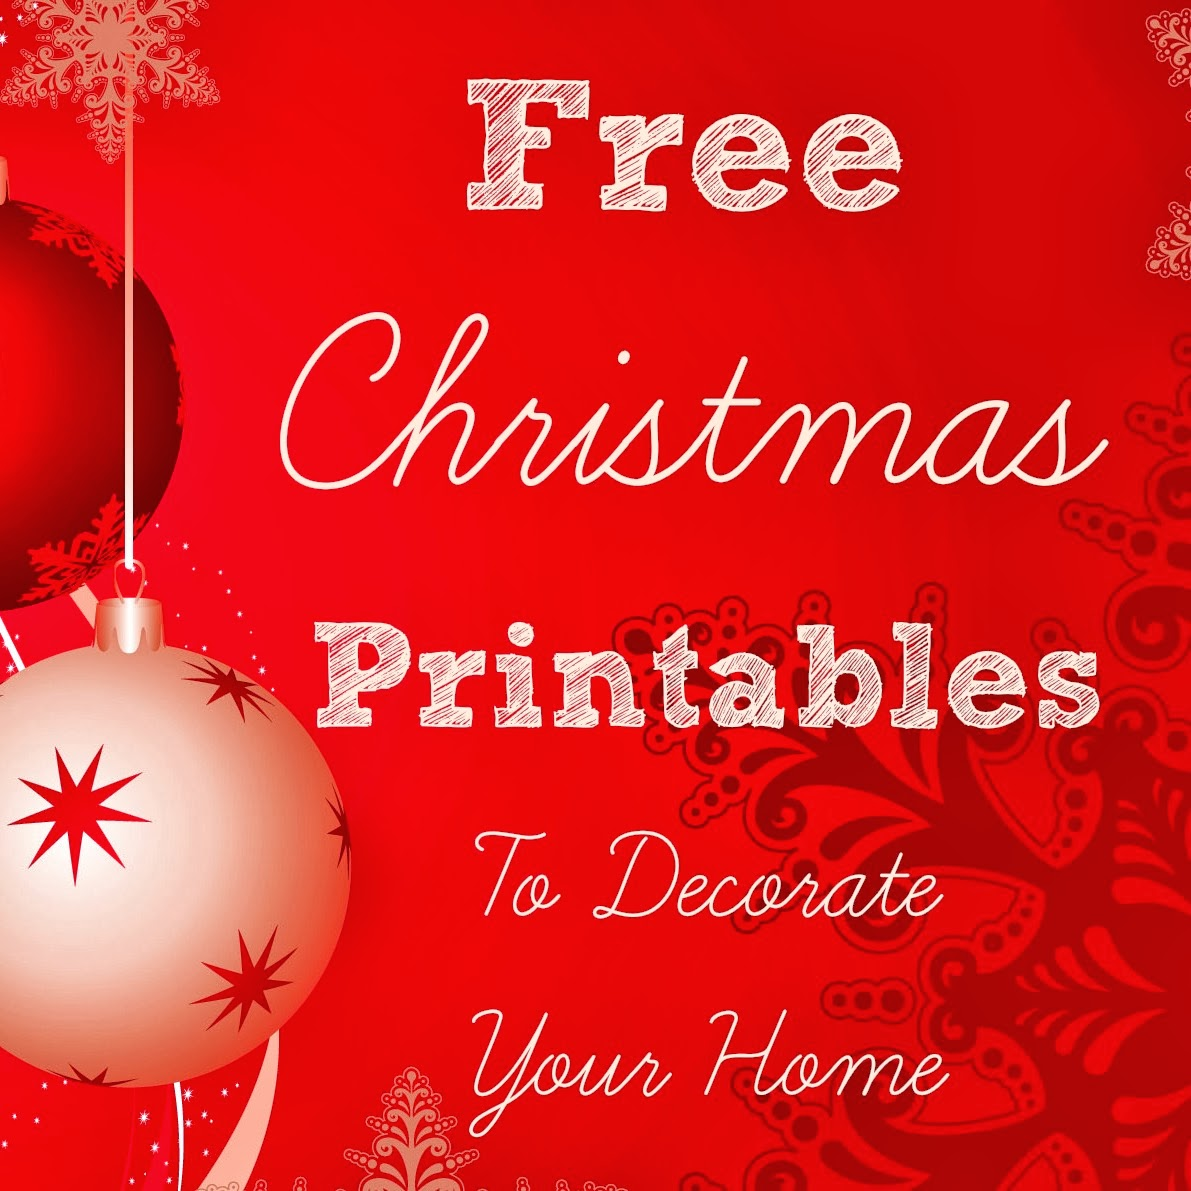 Some Of The Best Things In Life Are Mistakes Free Christmas Printables To Decorate Your Home